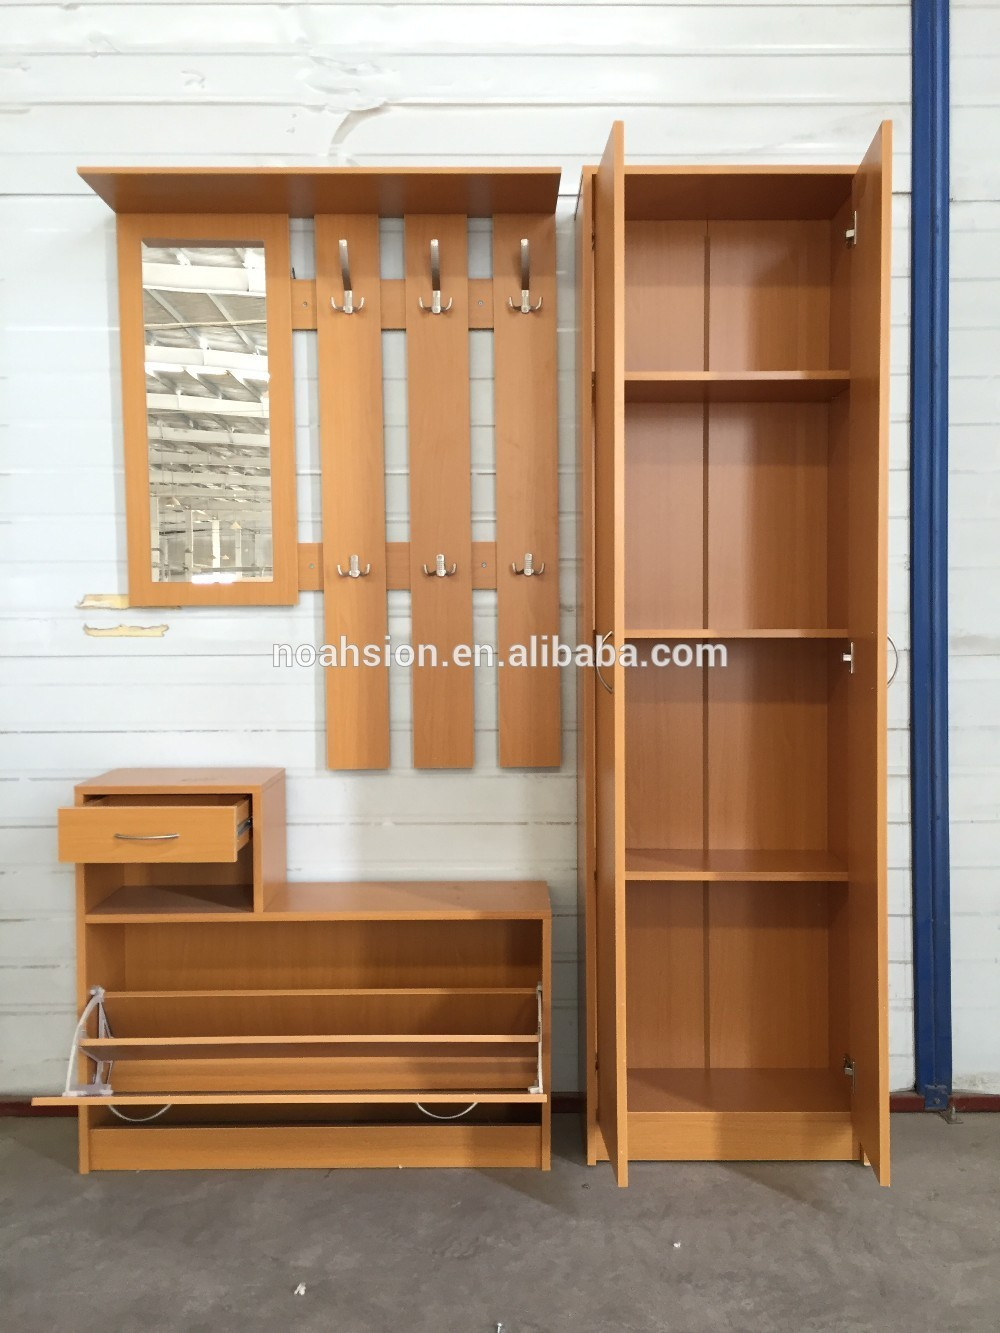 Modern bedroom wardrobe designs - Uk Market Hot Selling Bedroom Sets Modern Design Wooden